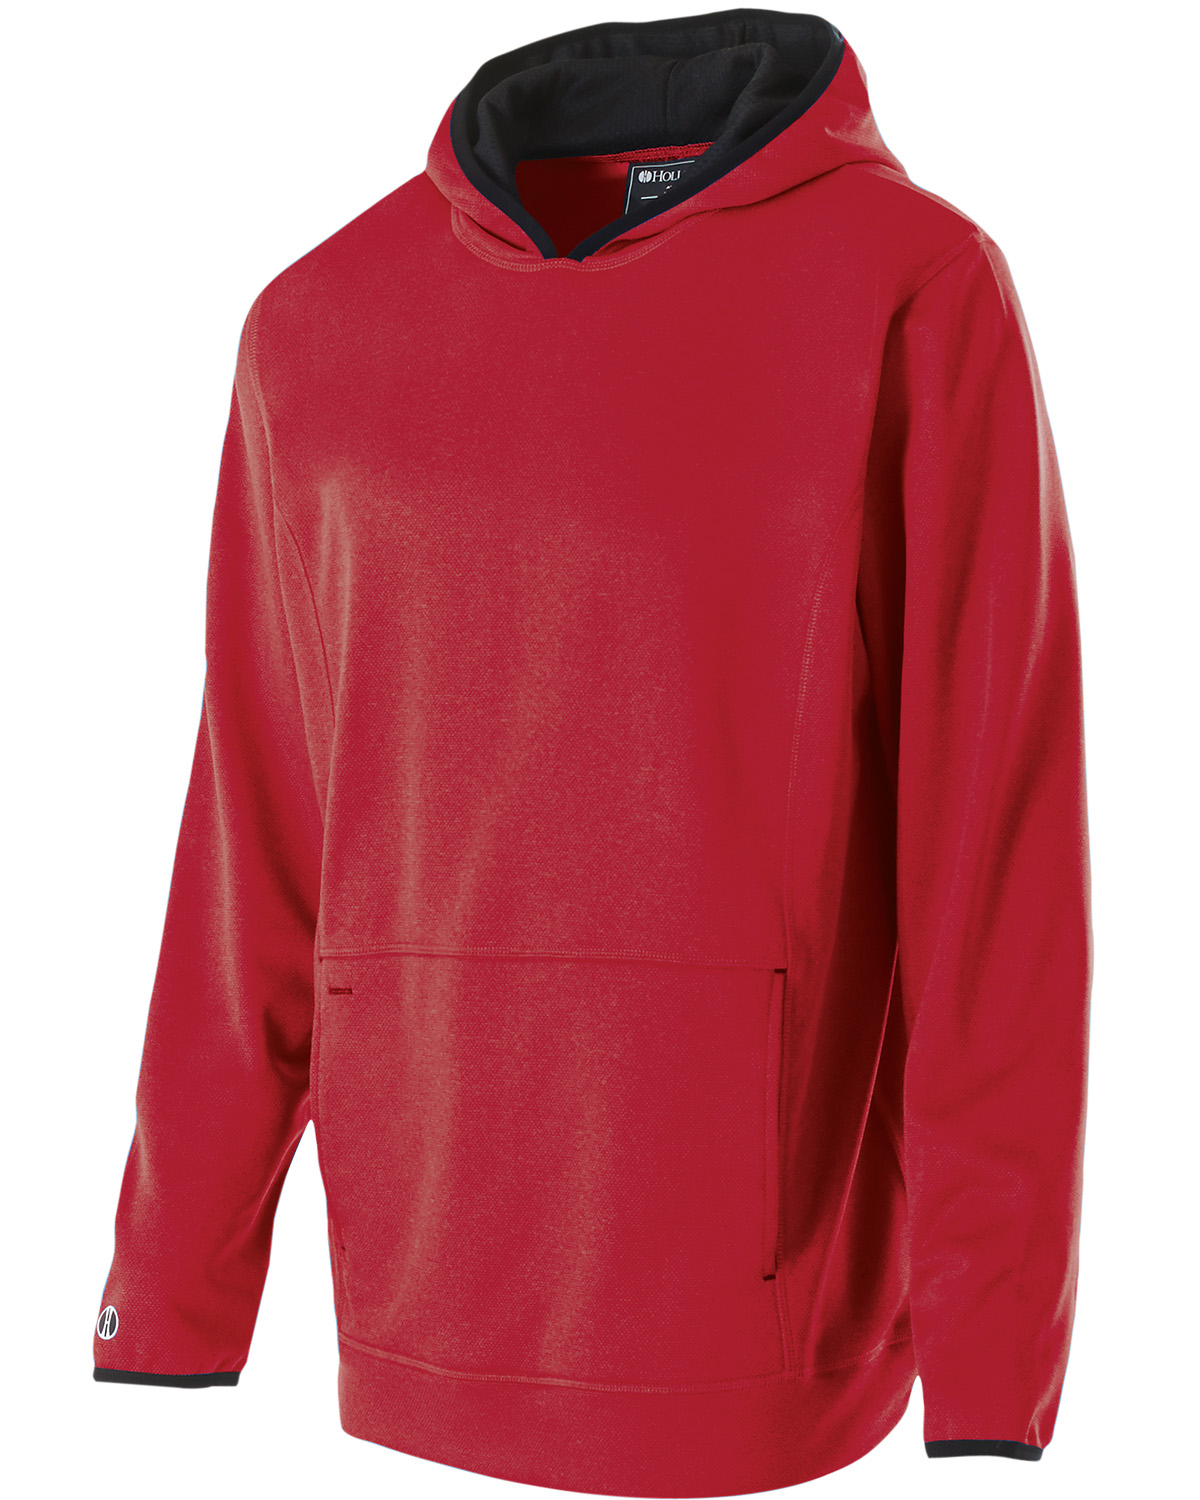 Holloway 229175 - Adult Polyester Fleece Artillery Hoodie